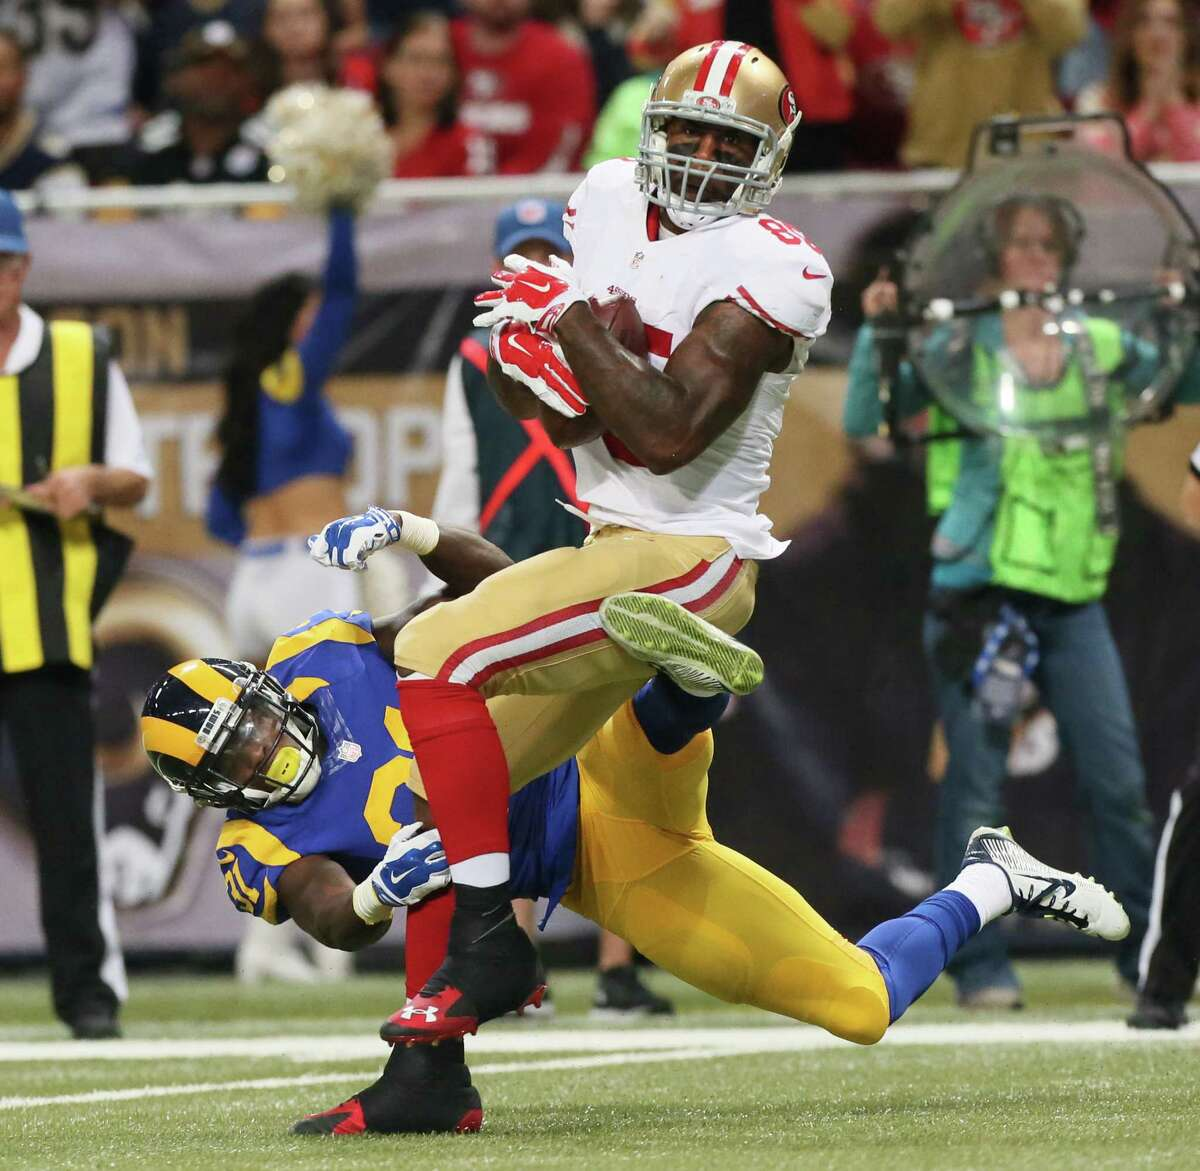 San Francisco 49ers tight end Vernon Davis tries to break free of a tackle by Rams safety Maurice Alexander during Sunday's game in St. Louis.